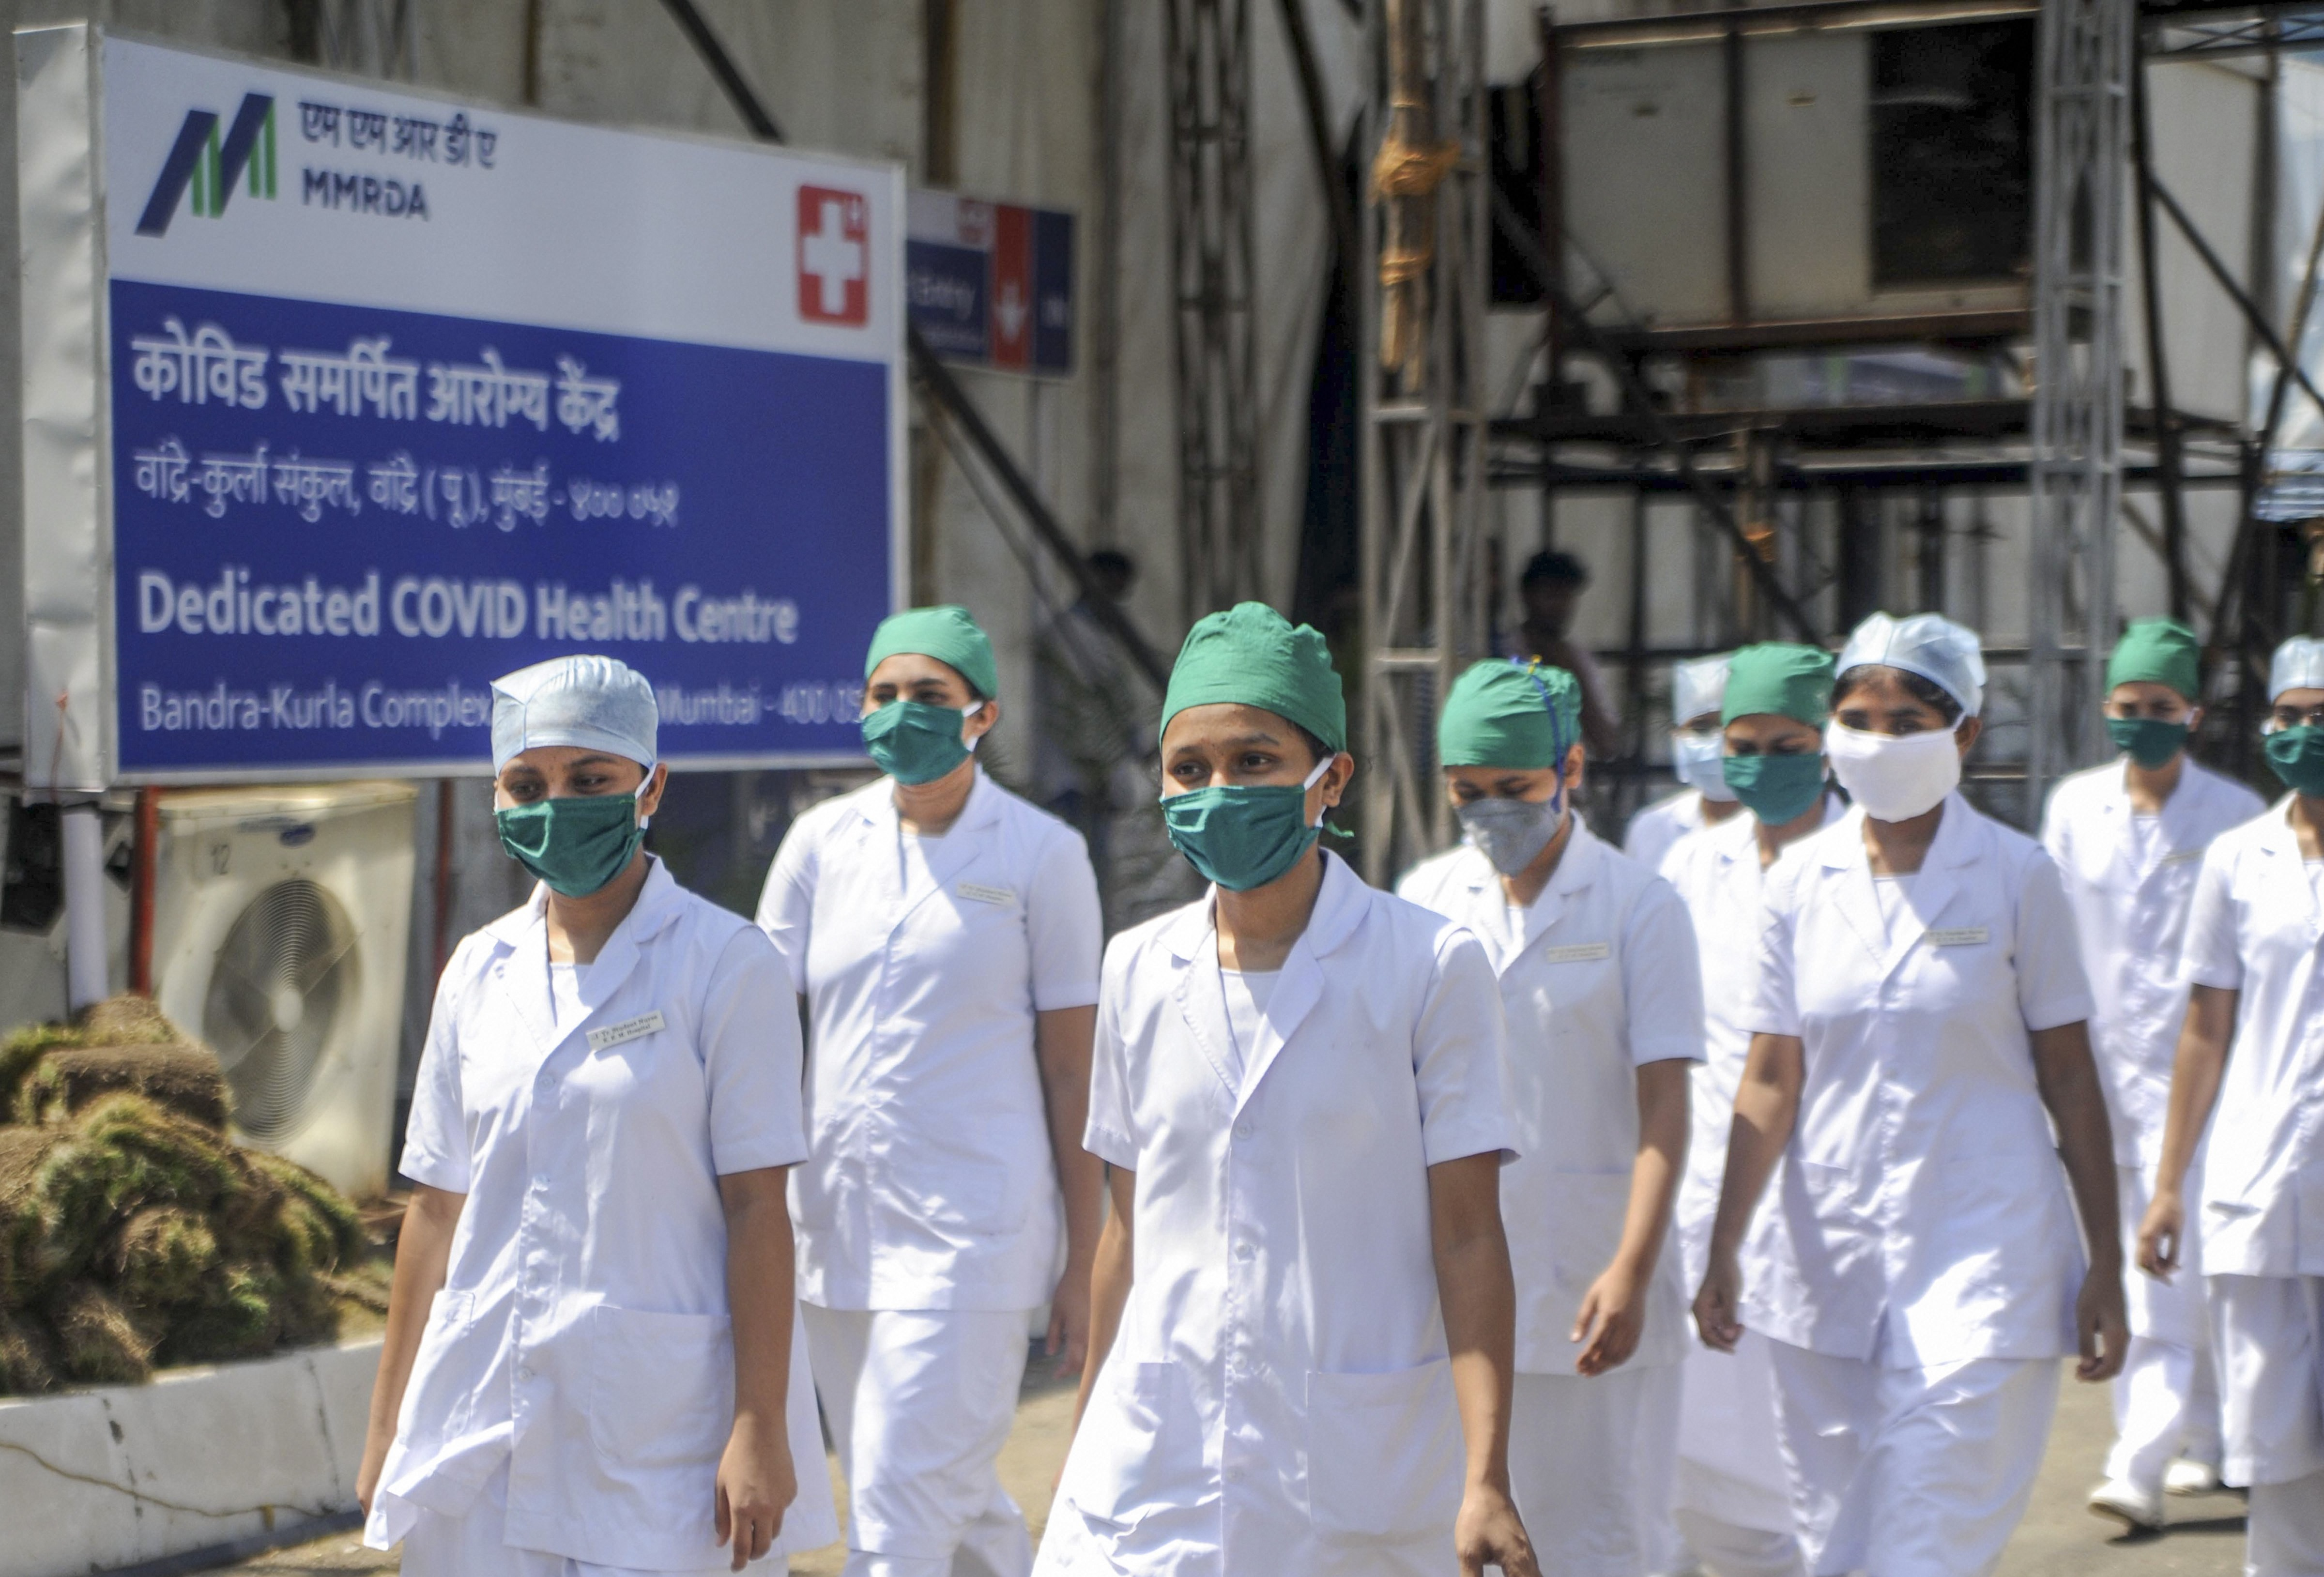 Medical staff at the new open-ground quarantine and isolation facility for semi-critical coronavirus patients, at BKC in Mumbai, Wednesday, May 20, 2020.